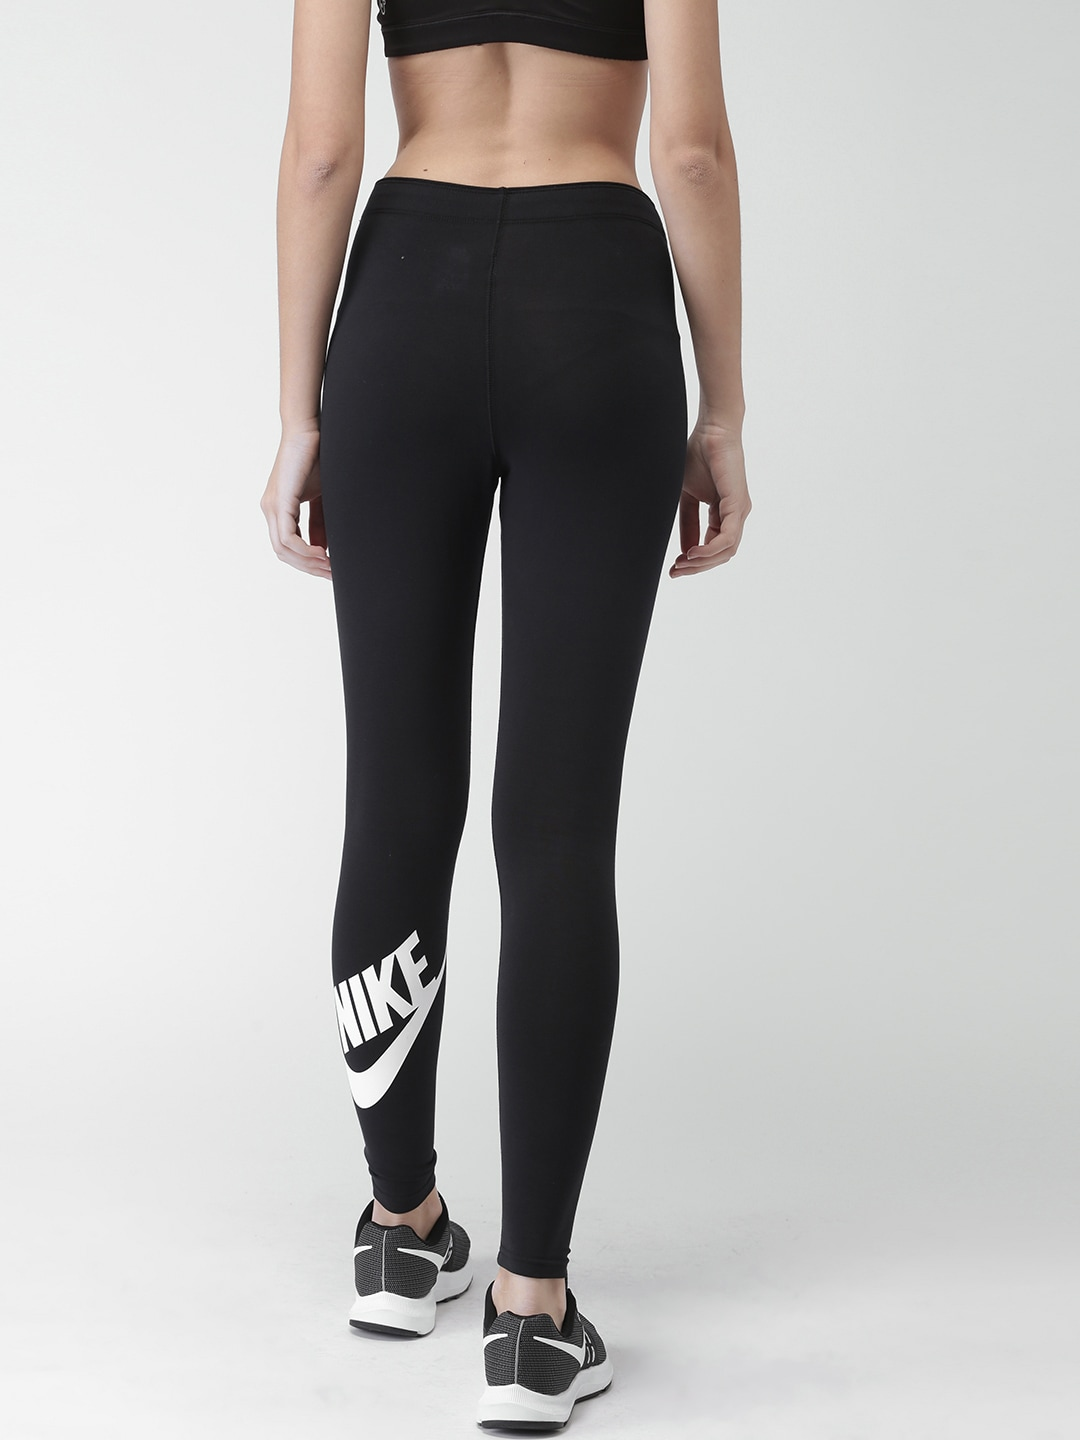 177702a9291937 Nike Safari Tights Leggings - Buy Nike Safari Tights Leggings online in  India